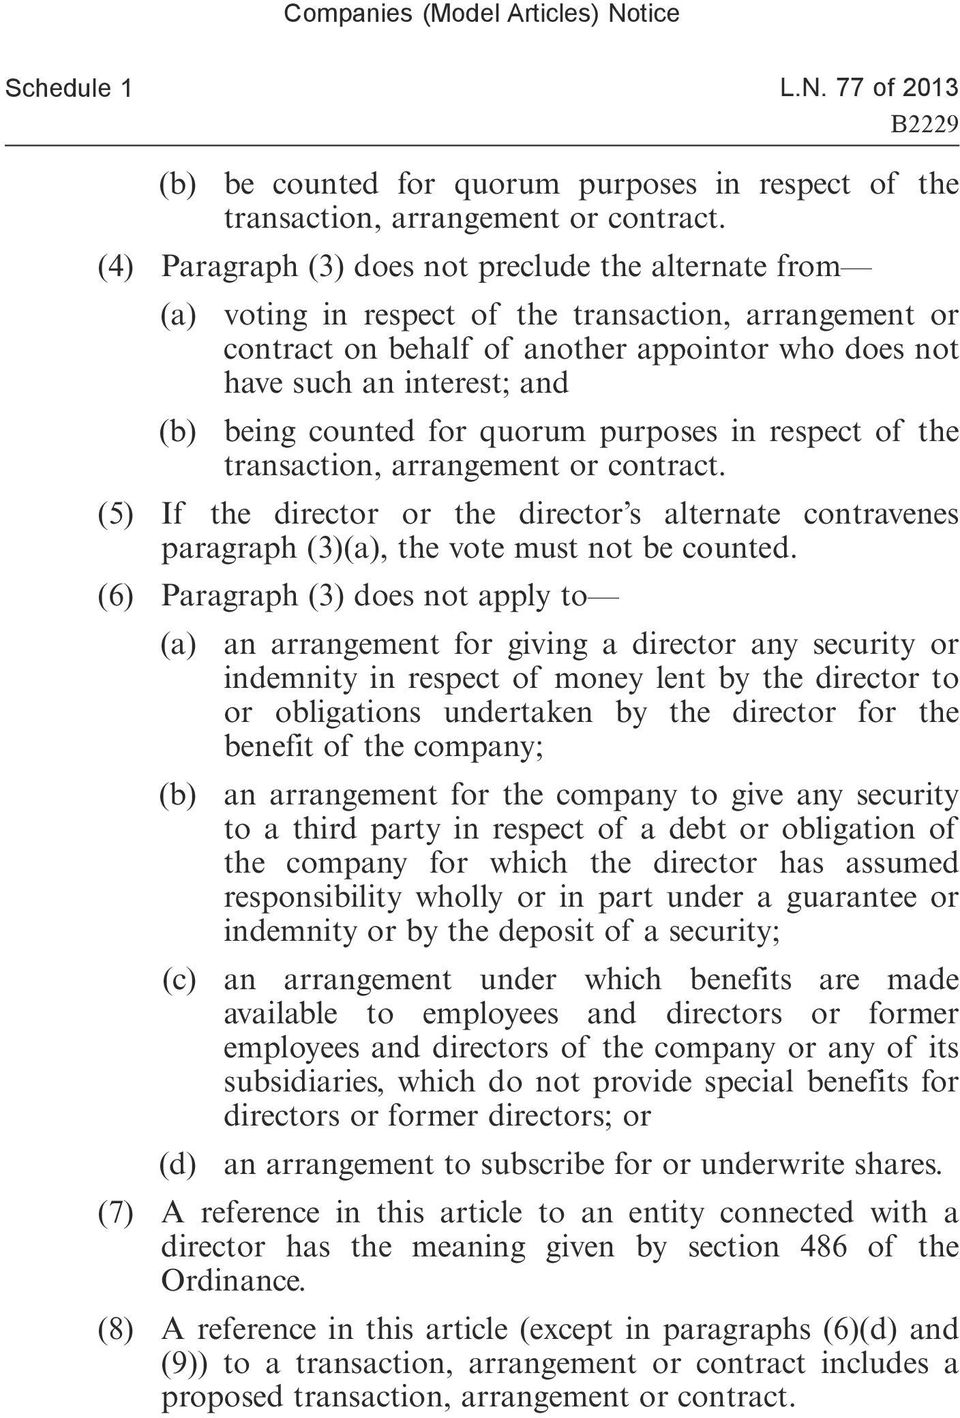 being counted for quorum purposes in respect of the transaction, arrangement or contract. (5) If the director or the director s alternate contravenes paragraph (3)(a), the vote must not be counted.